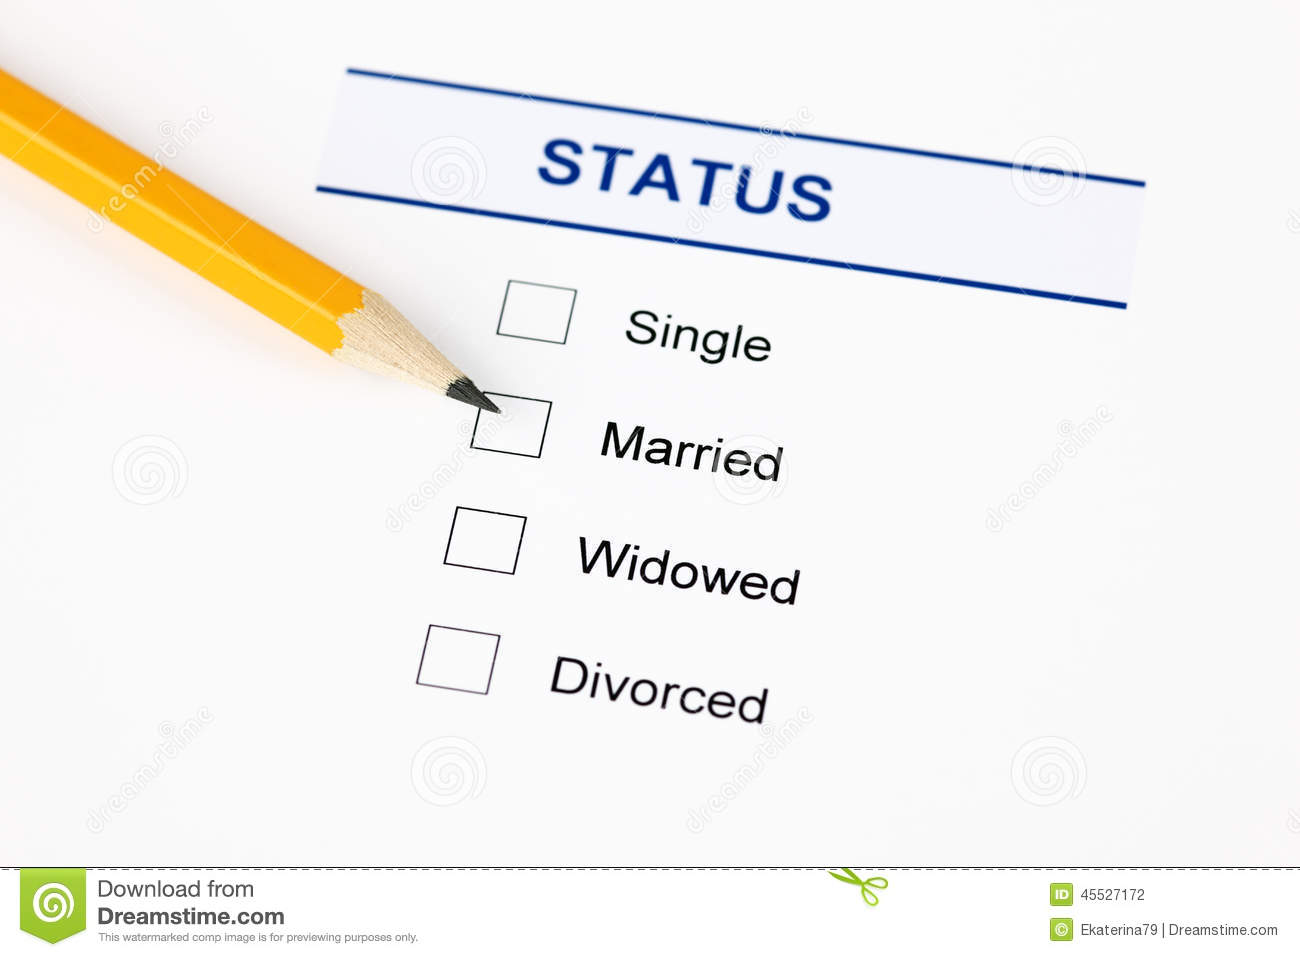 marital status and marks secured Part i - identifying information (mark the type of application)  initial uniform  residential loan application and this addendum was obtained from the  borrower  status, national origin, marital status, age, or source of income is  illegal and void.